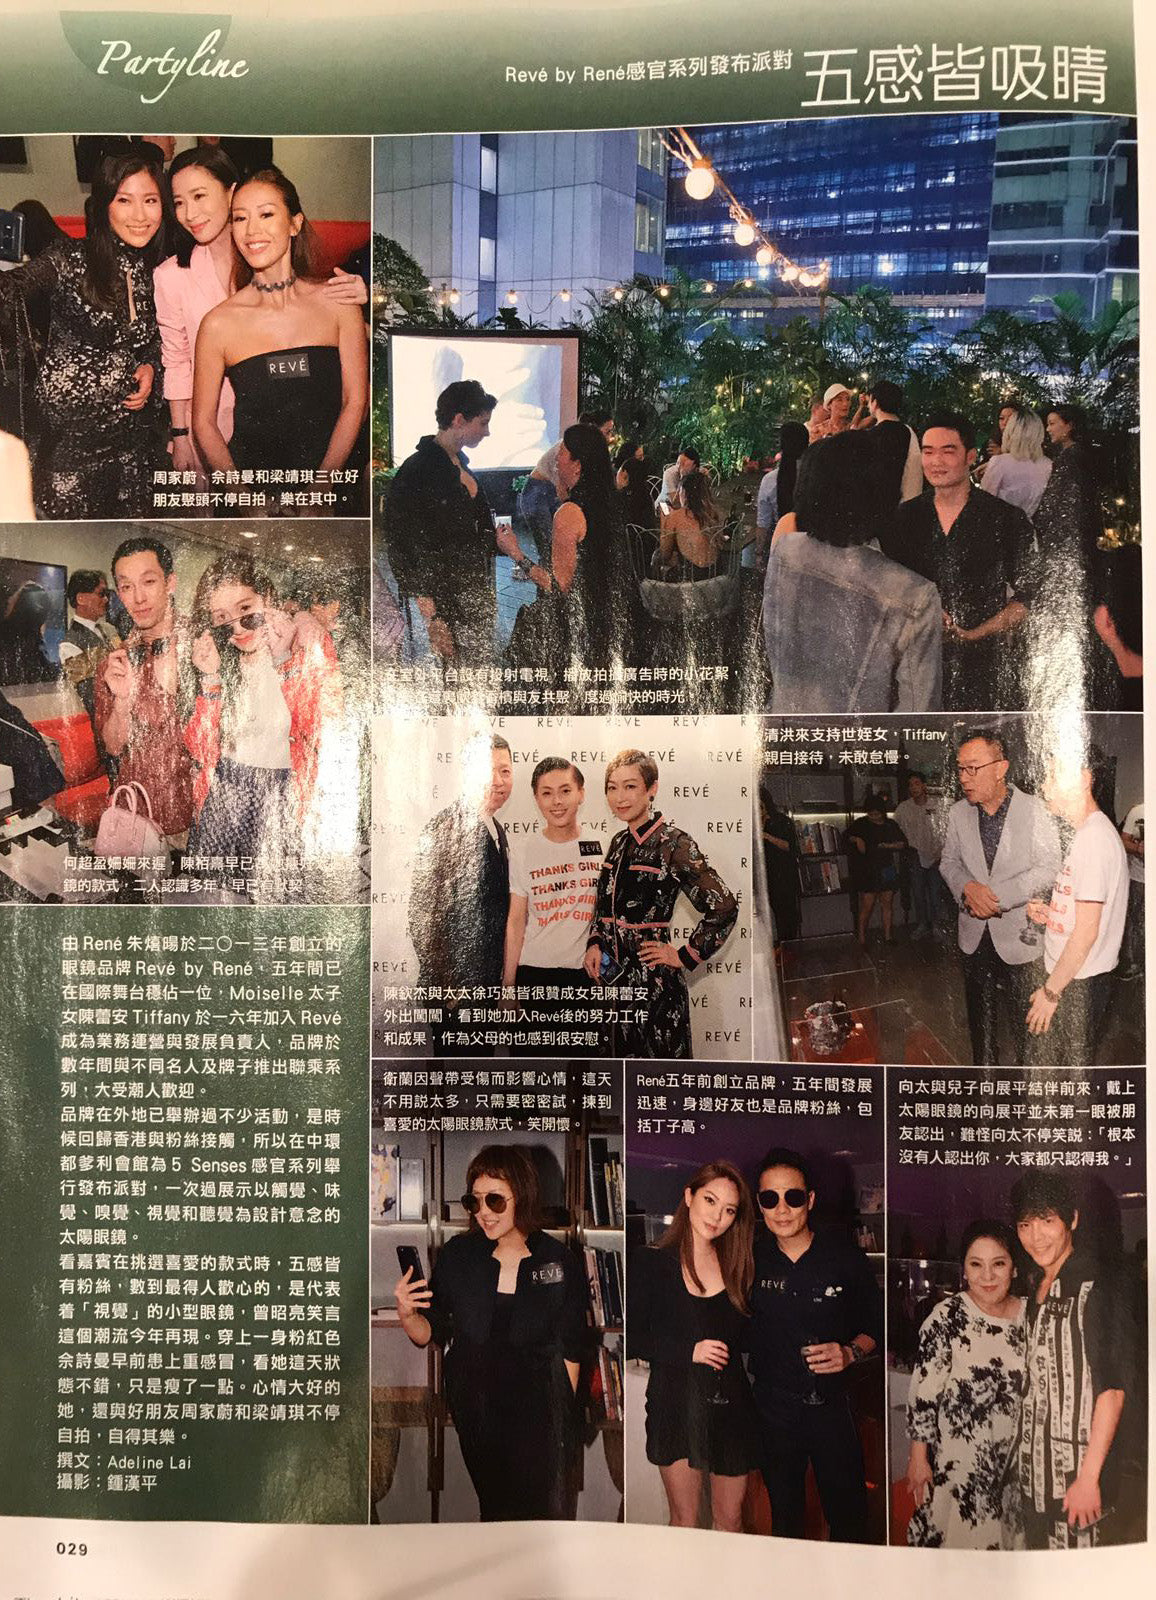 REVE by RENE Hong Kong event featured in Mingpao 2018